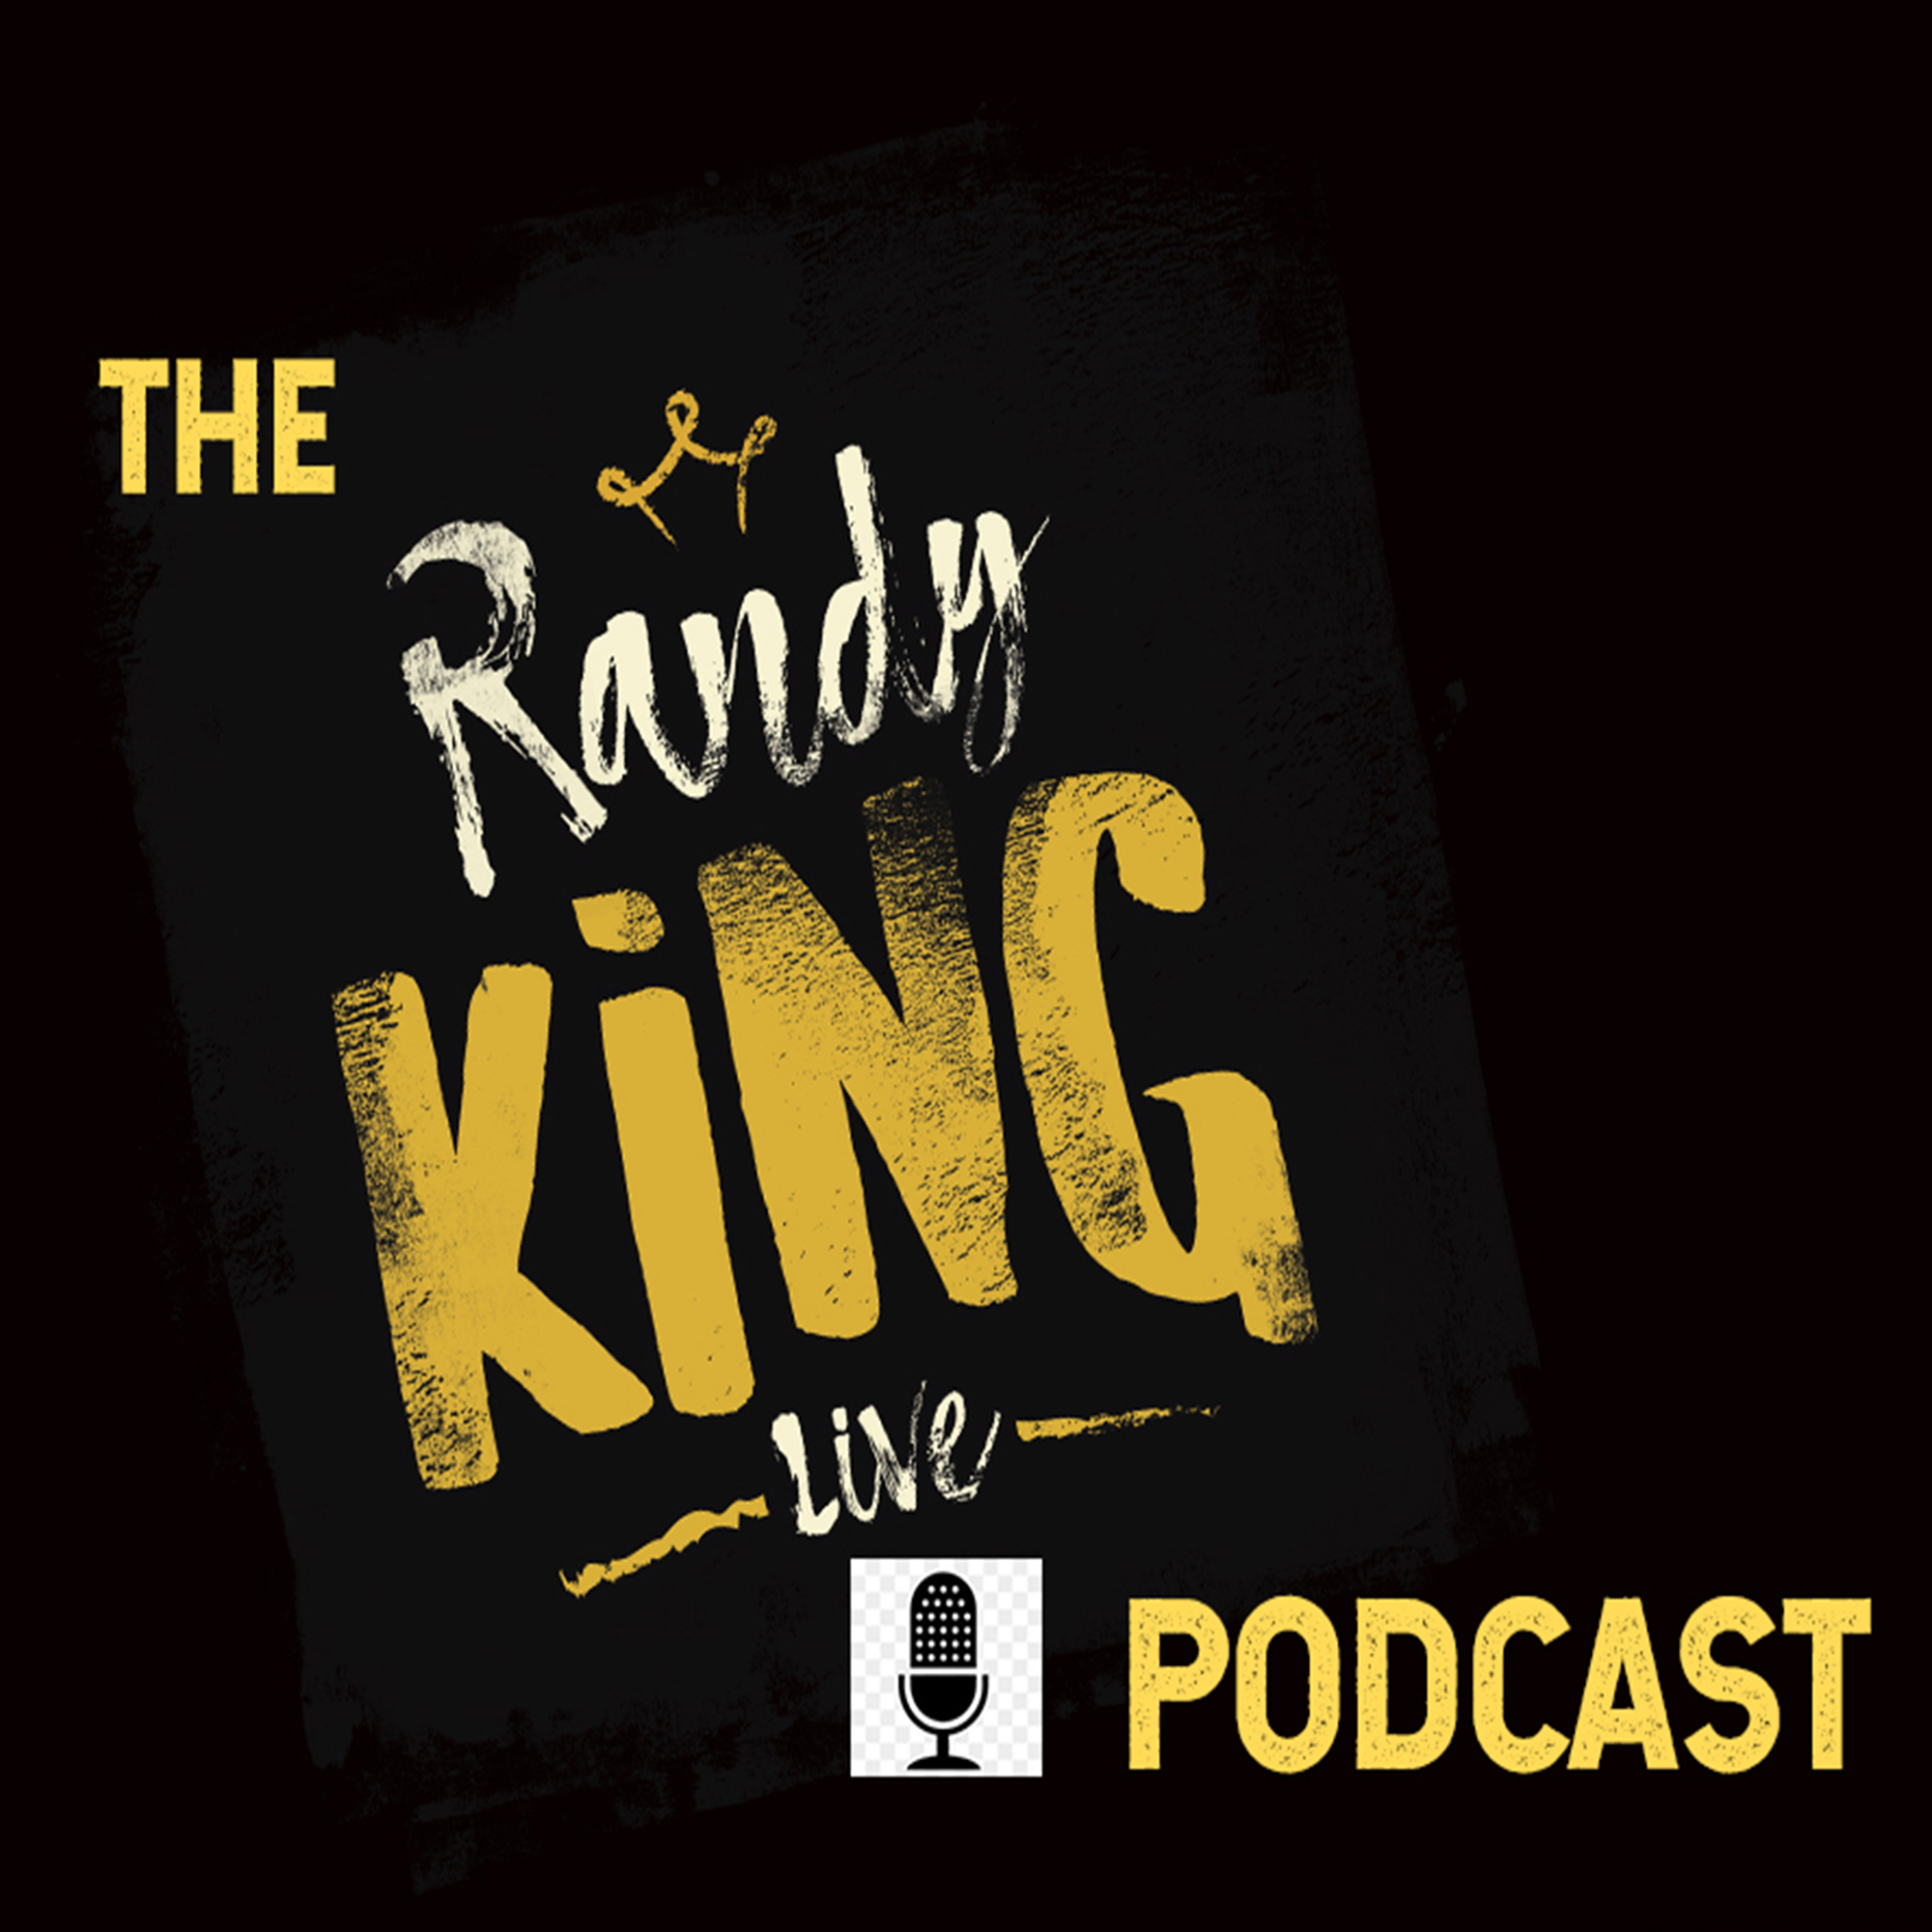 The Randy King Live Podcast